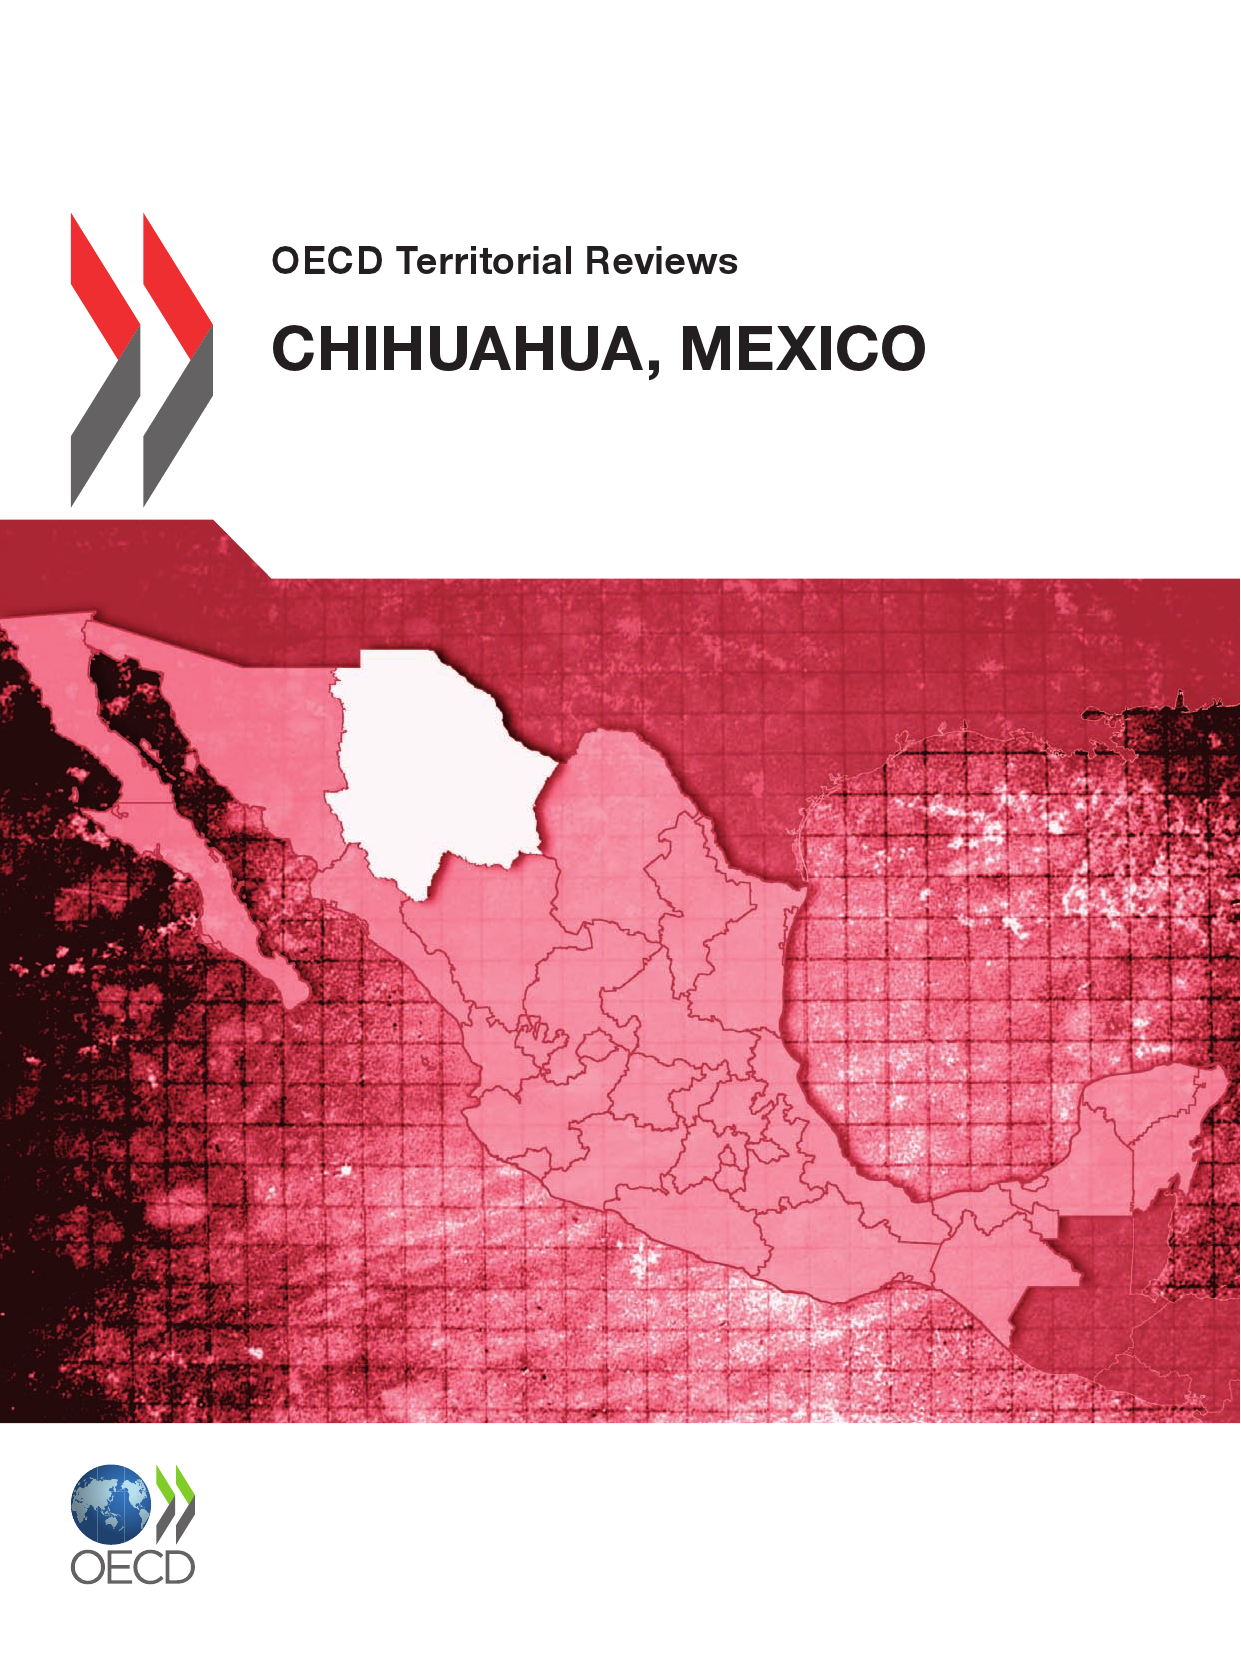 OECD Territorial Reviews: Chihuahua, Mexico 2012